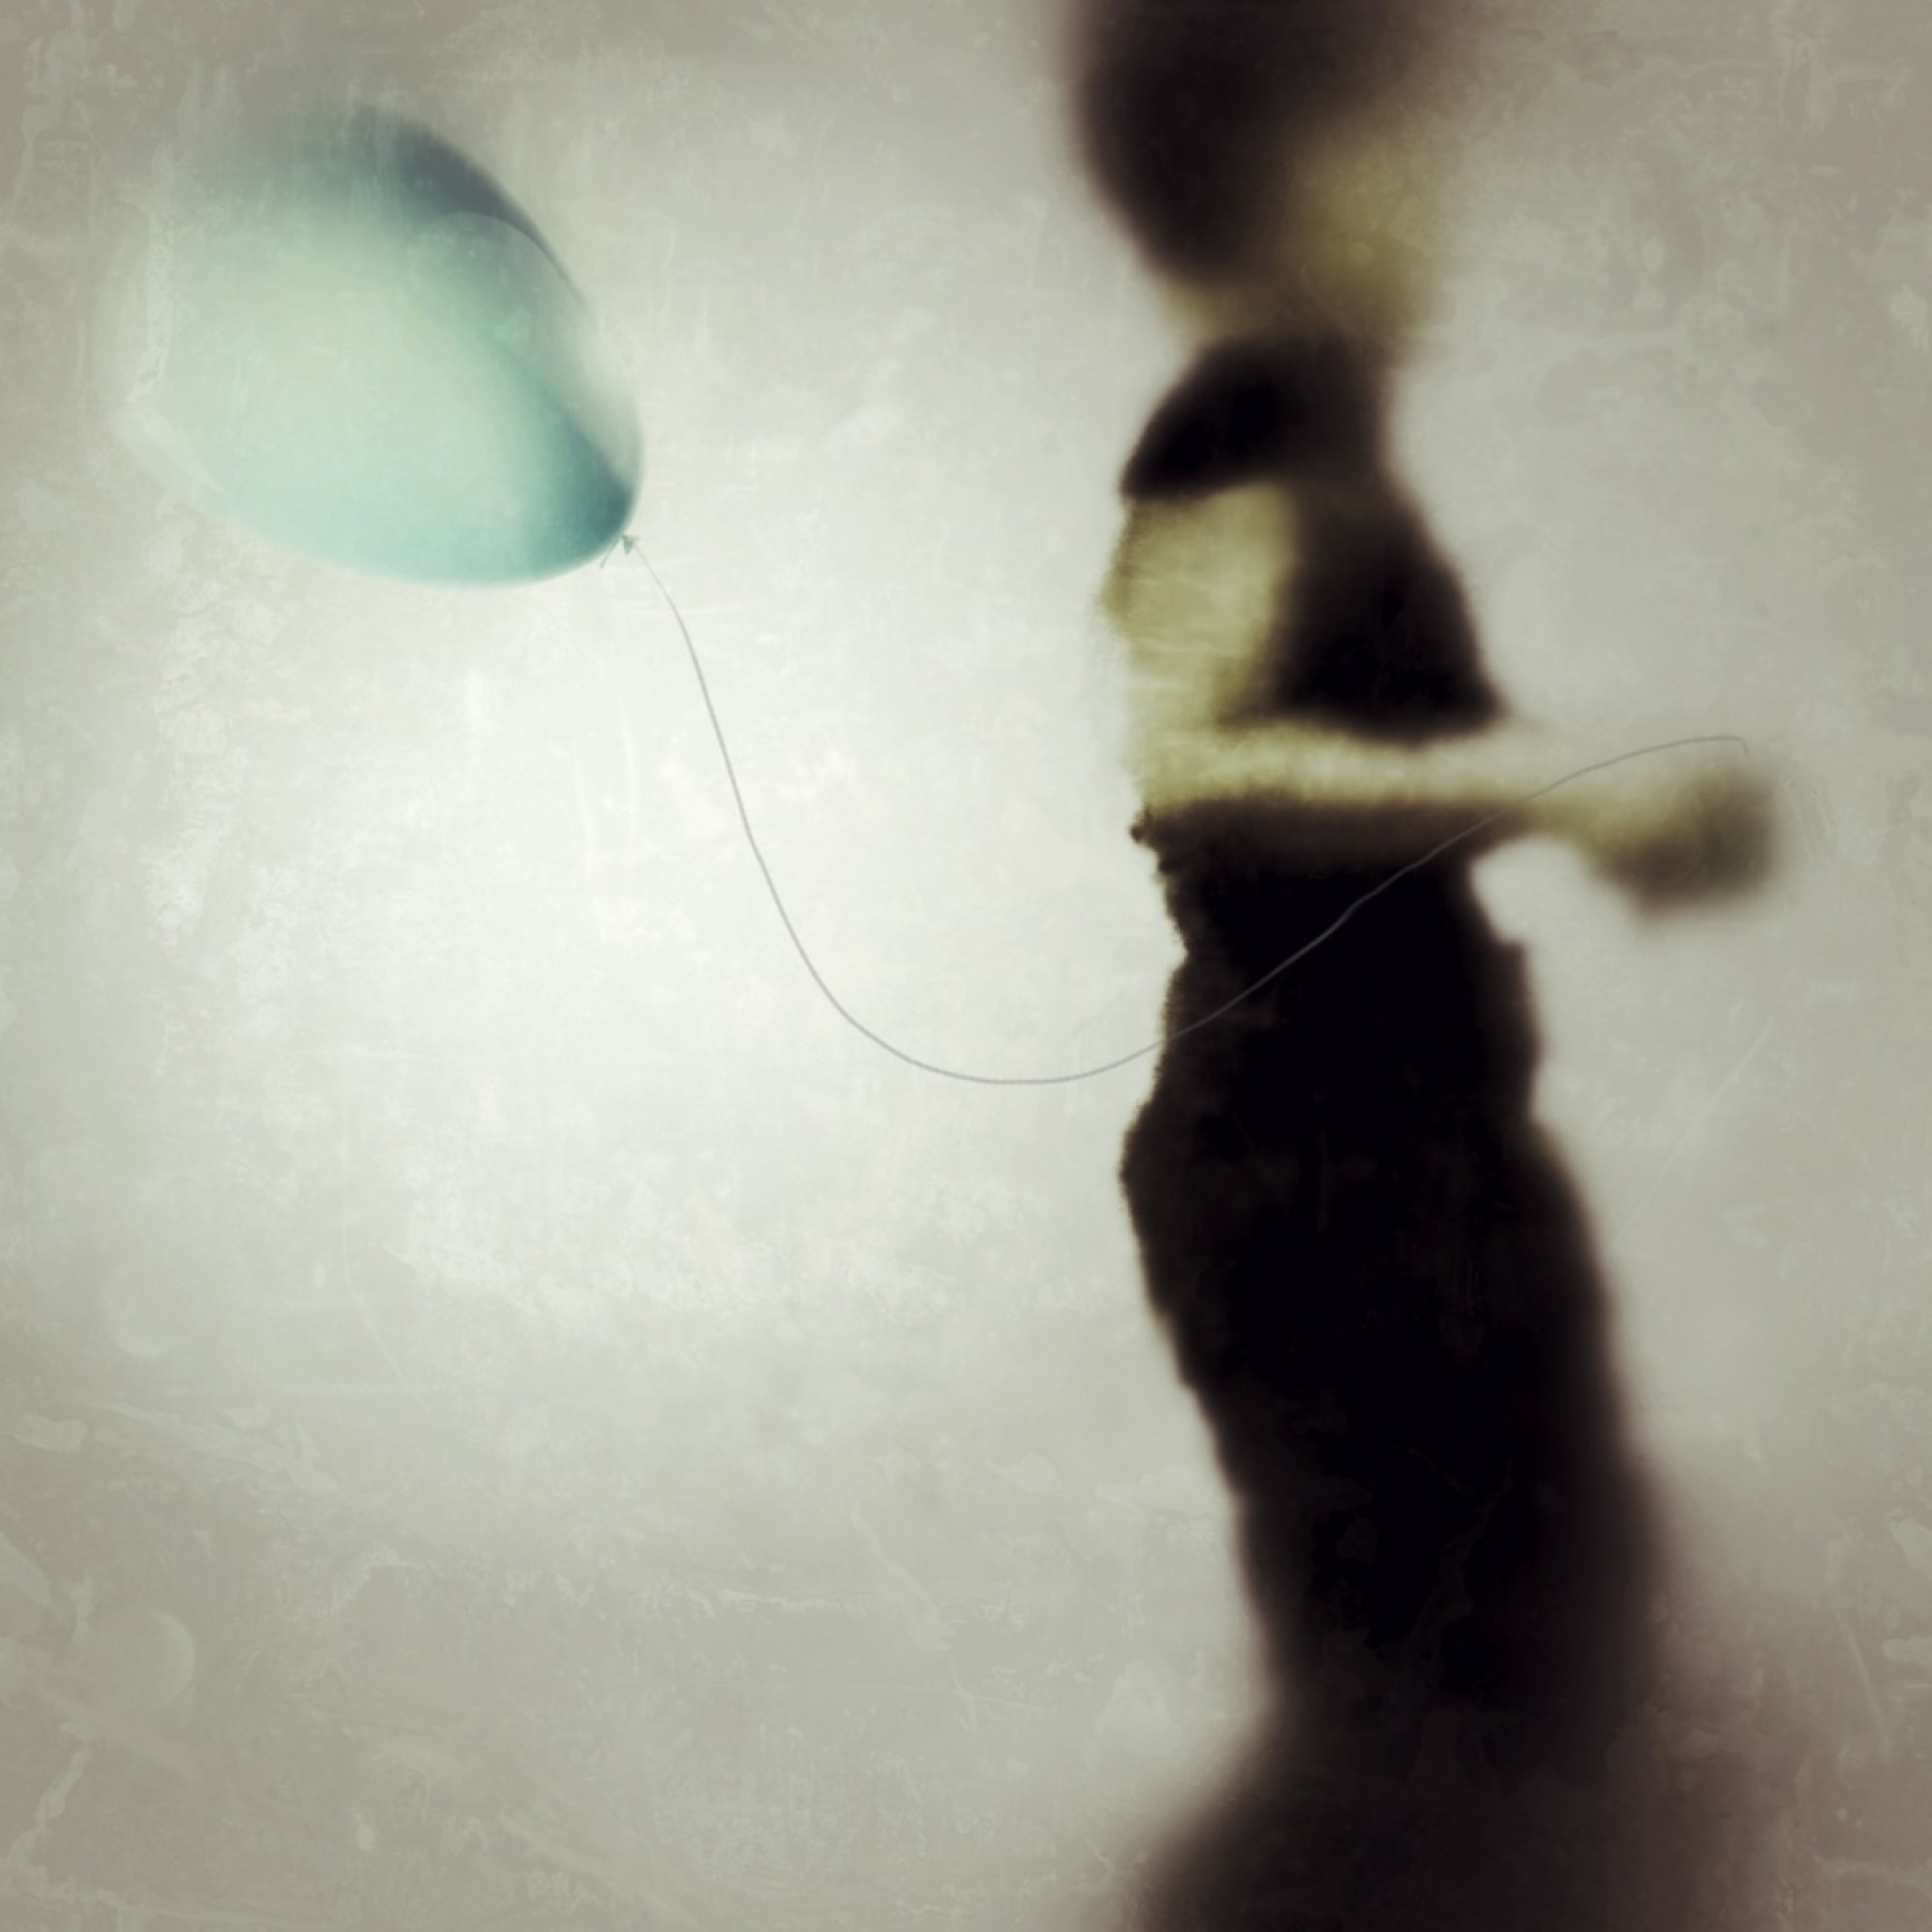 The Girl and Balloon